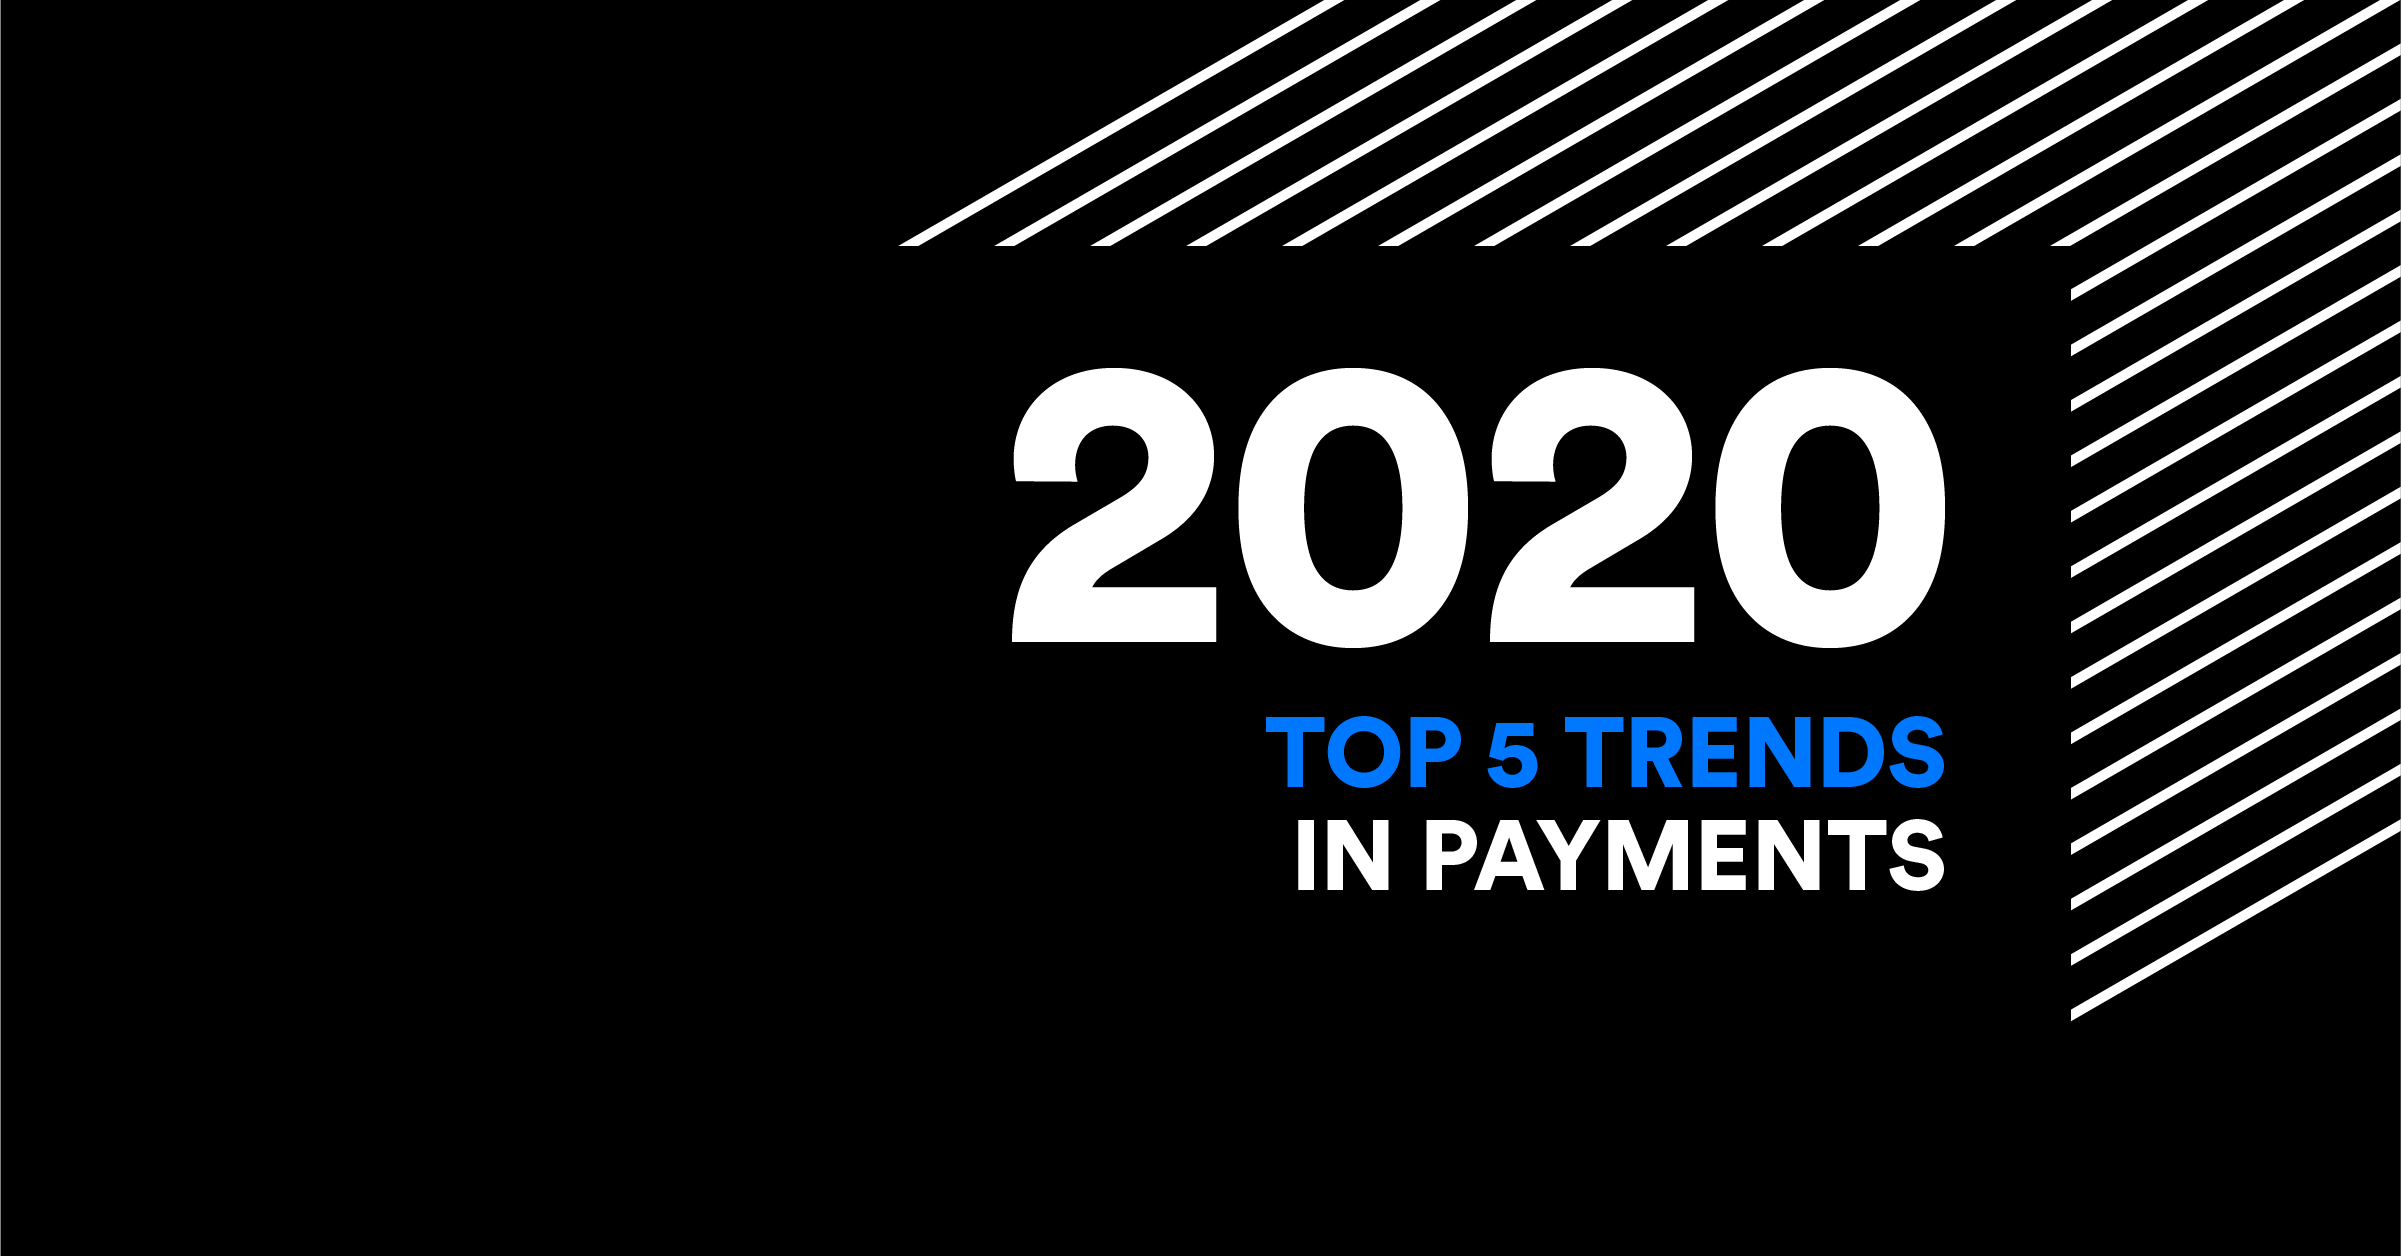 5 payment trends you need to know in 2020